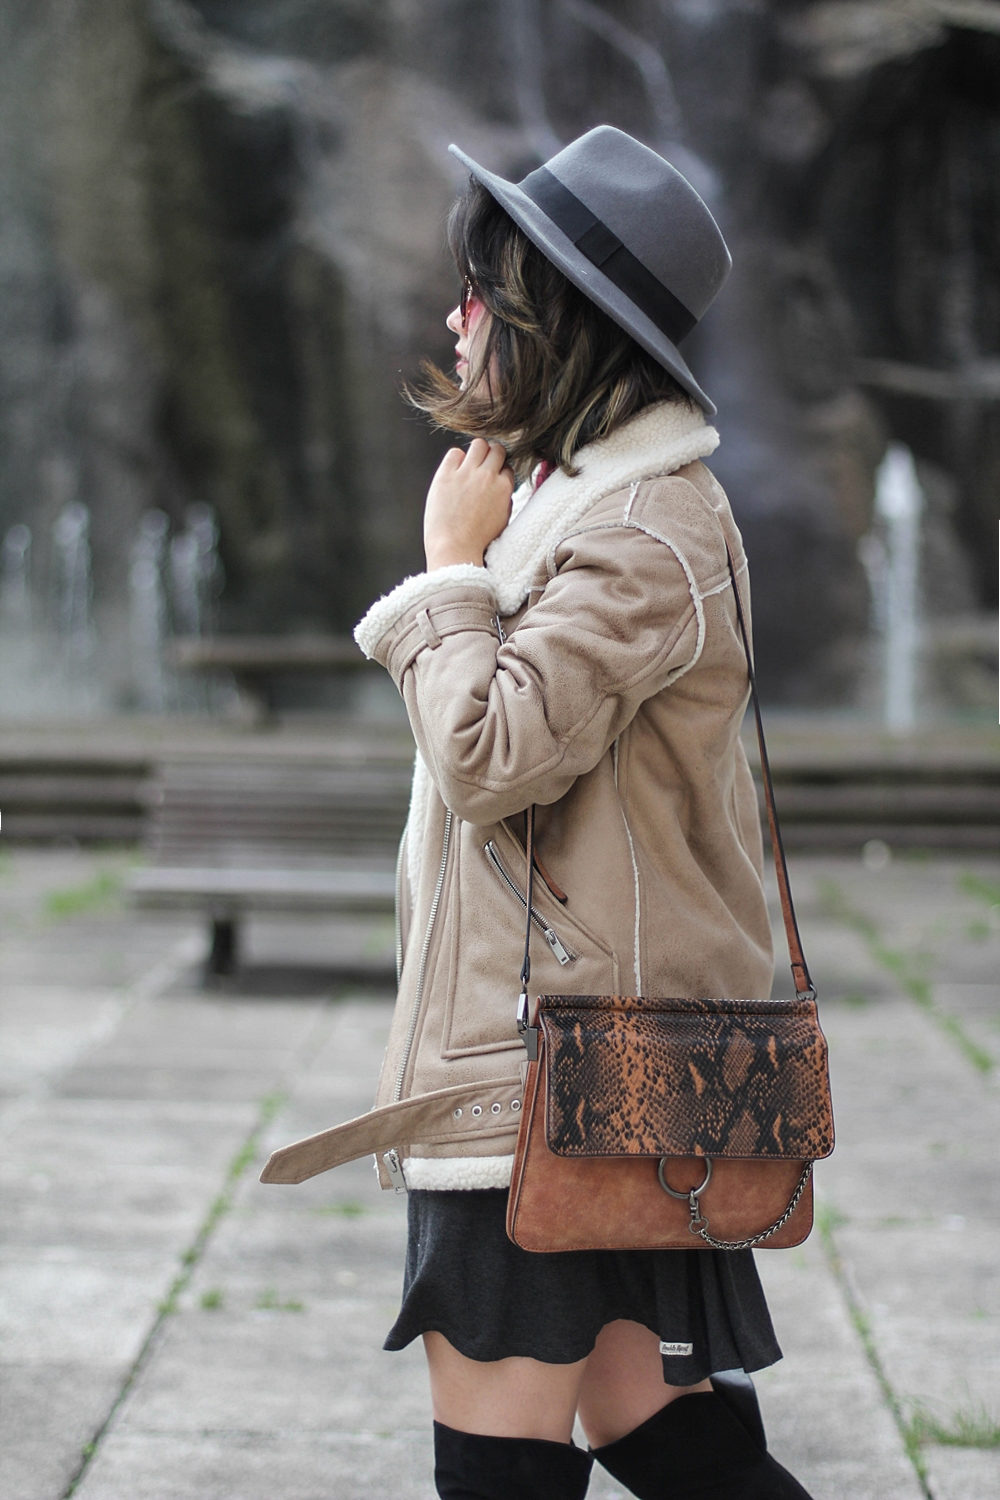 shearling-jacket-beige-la-redoute-hot-to-wear-myblueberrynightsblog